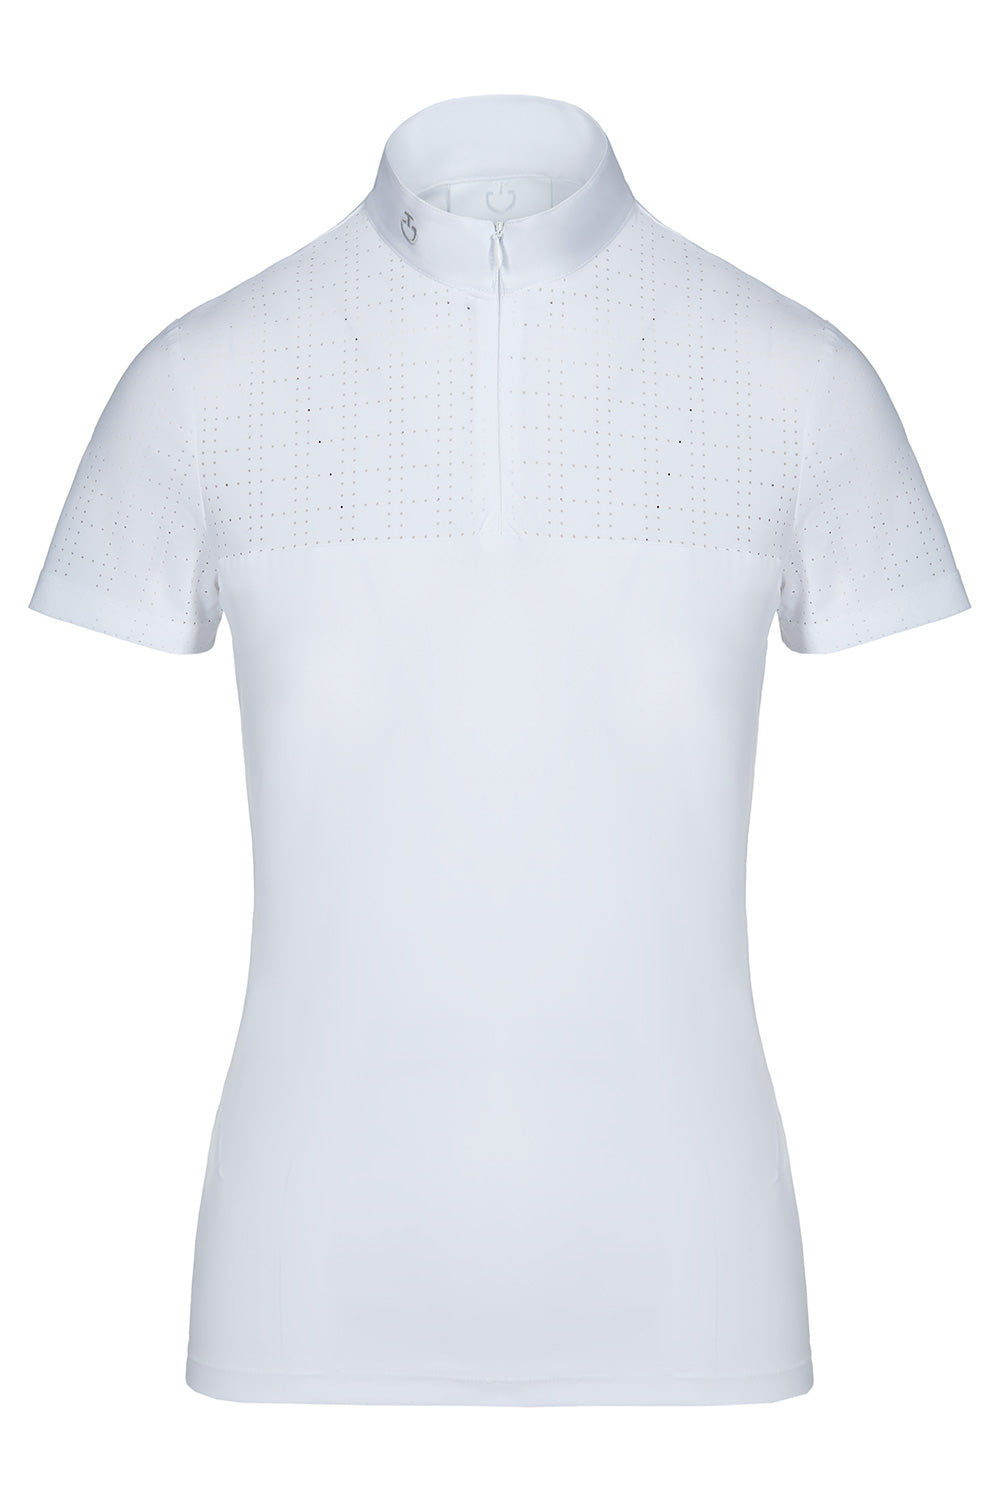 Cavalleria Toscana Square Perforated Zip S/S Comp Polo - Luxe EQ